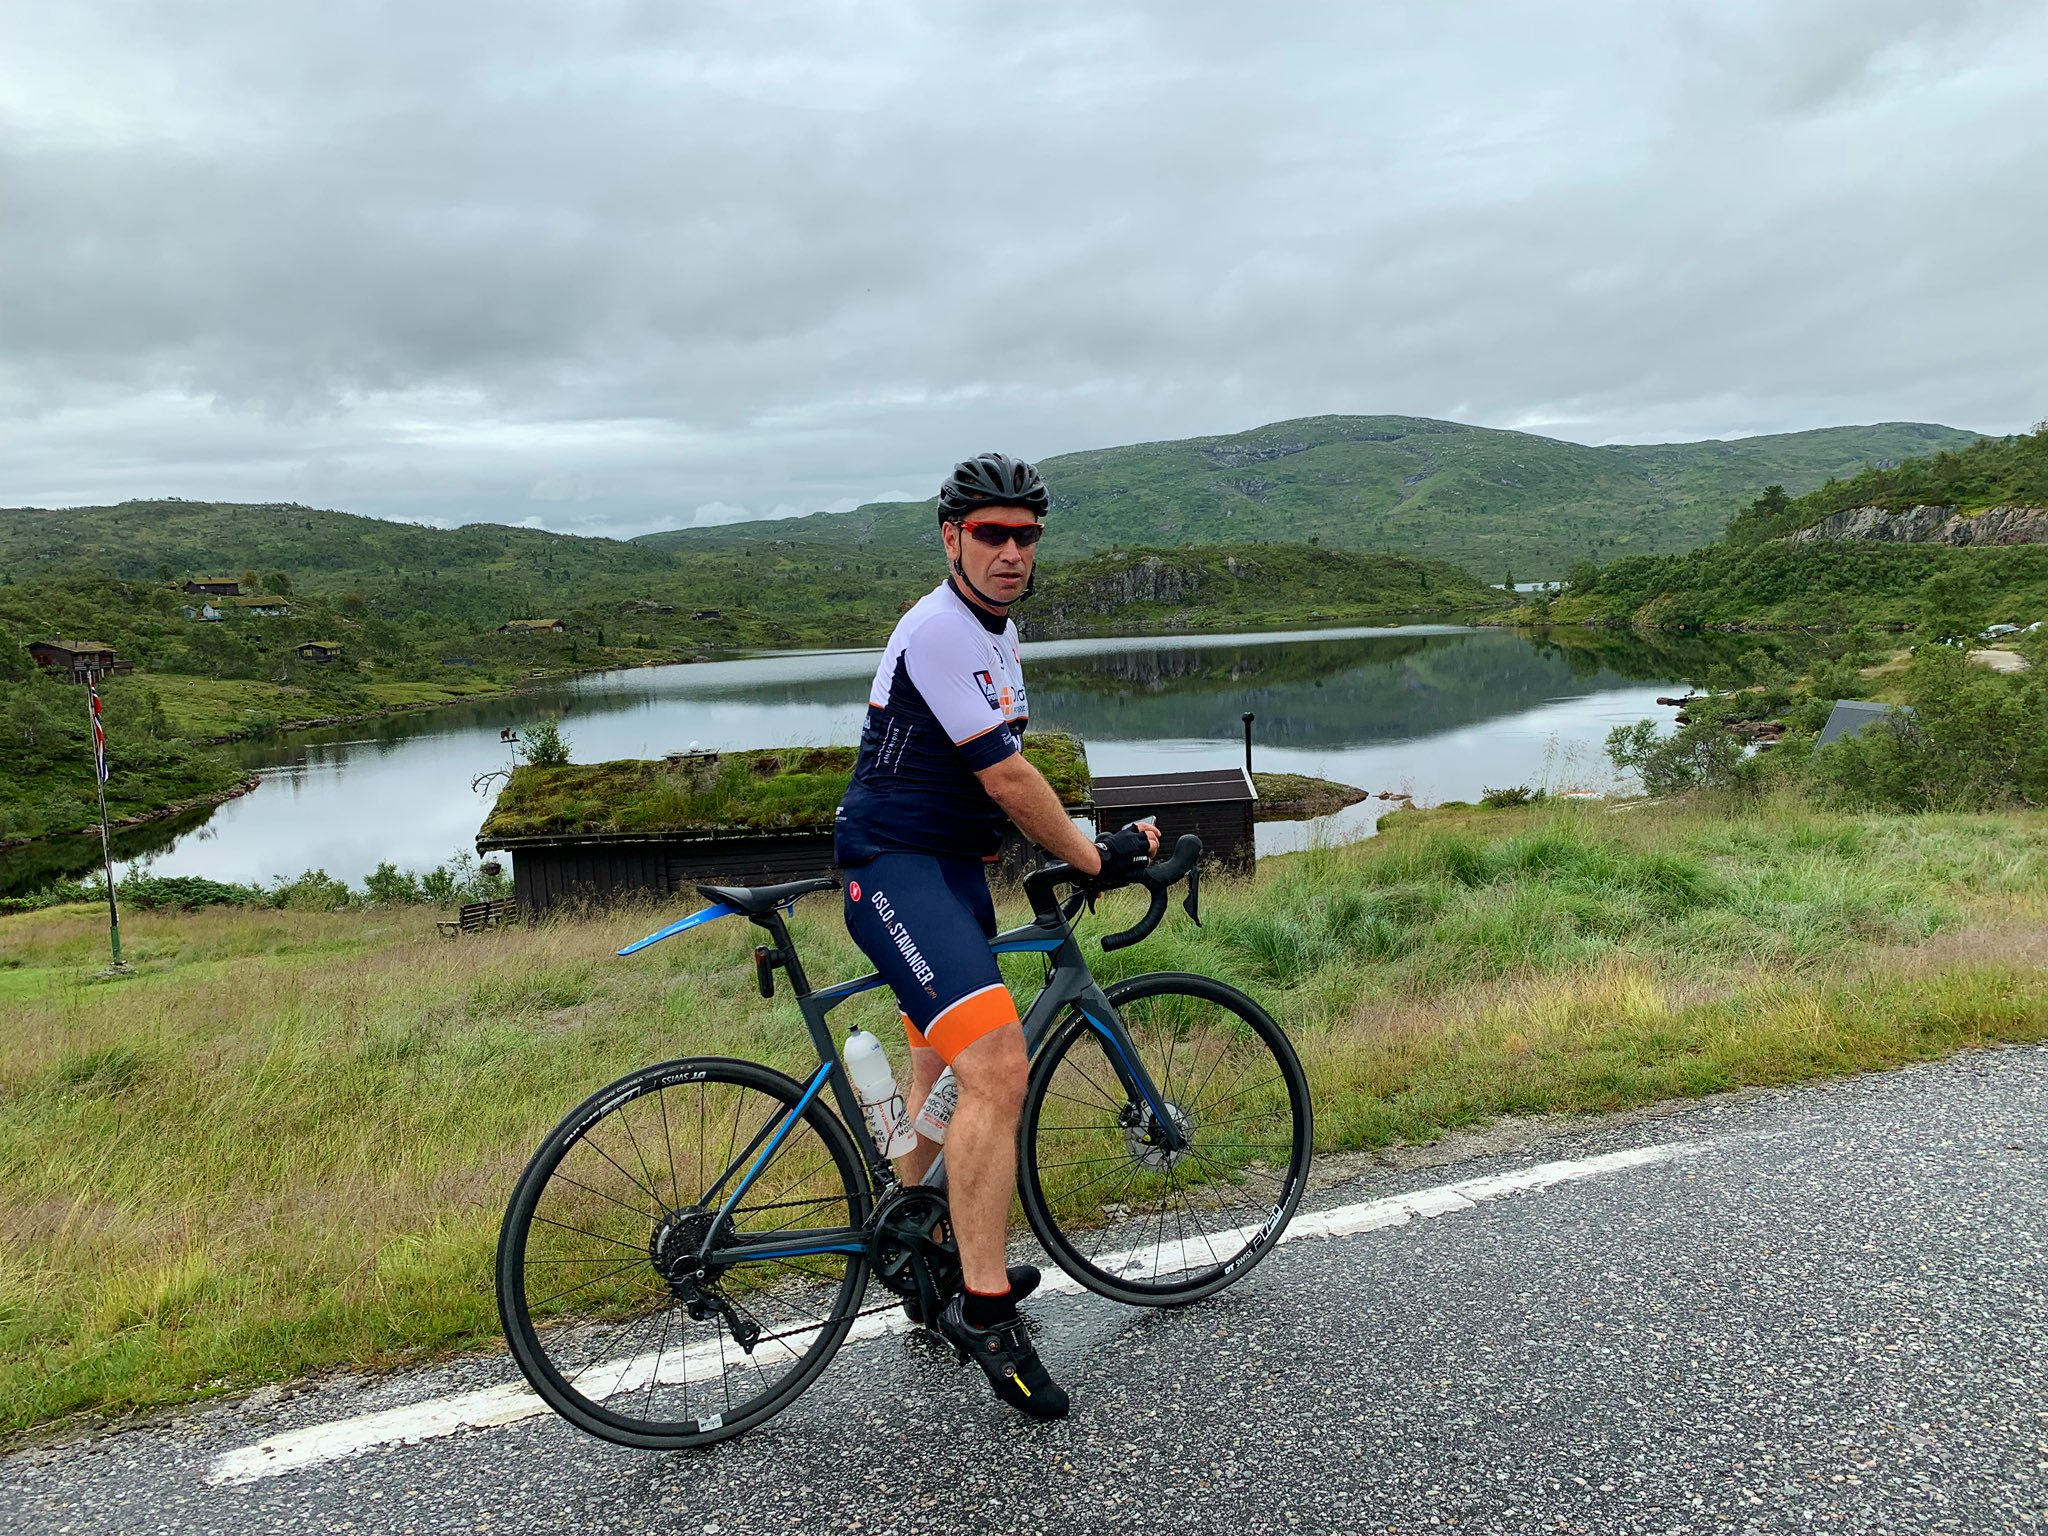 Tour of Europe Charity Cycle Ride (Oslo to Stavanger) 2019